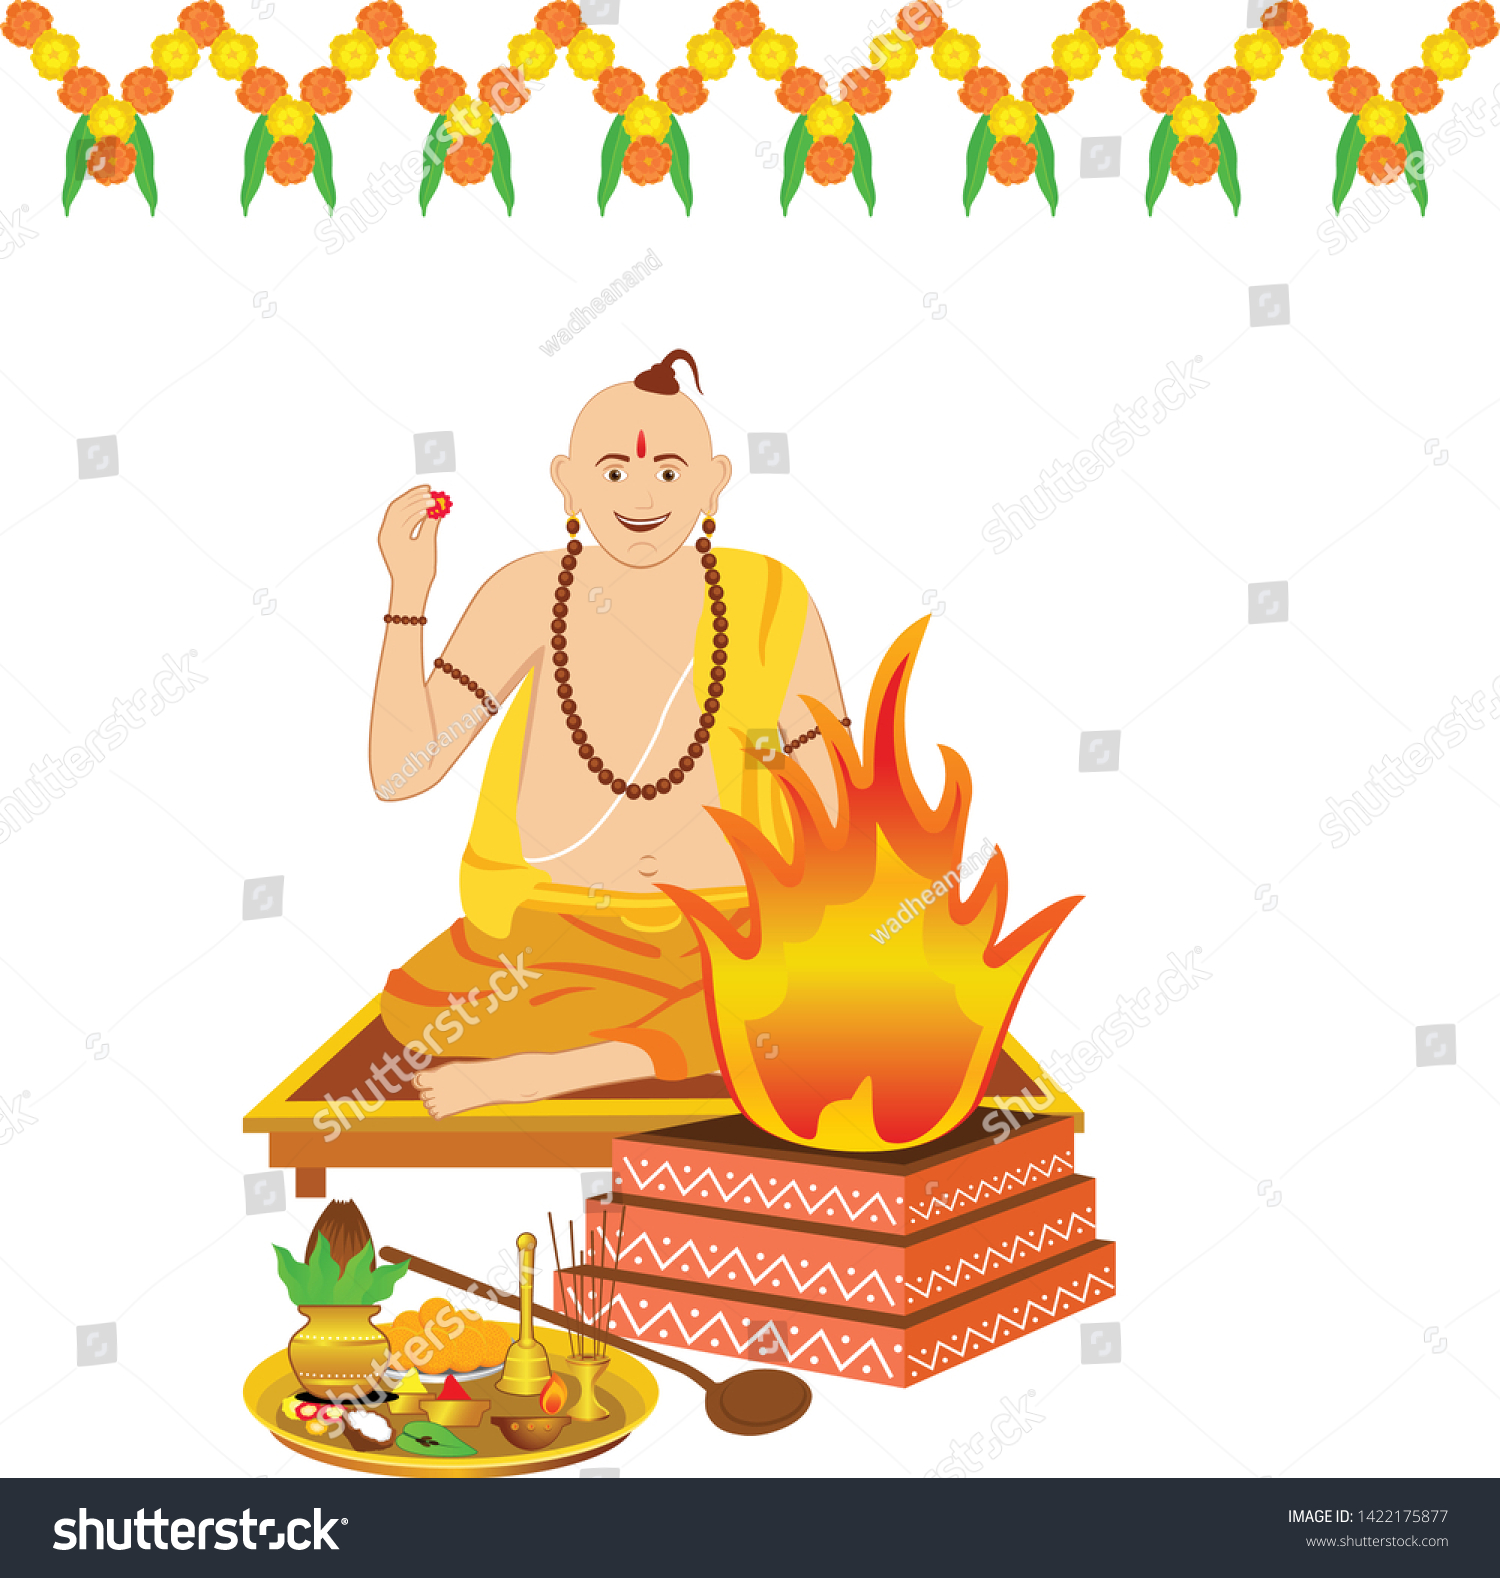 Creative design of a panditji doing the Havan or yagna pooja.